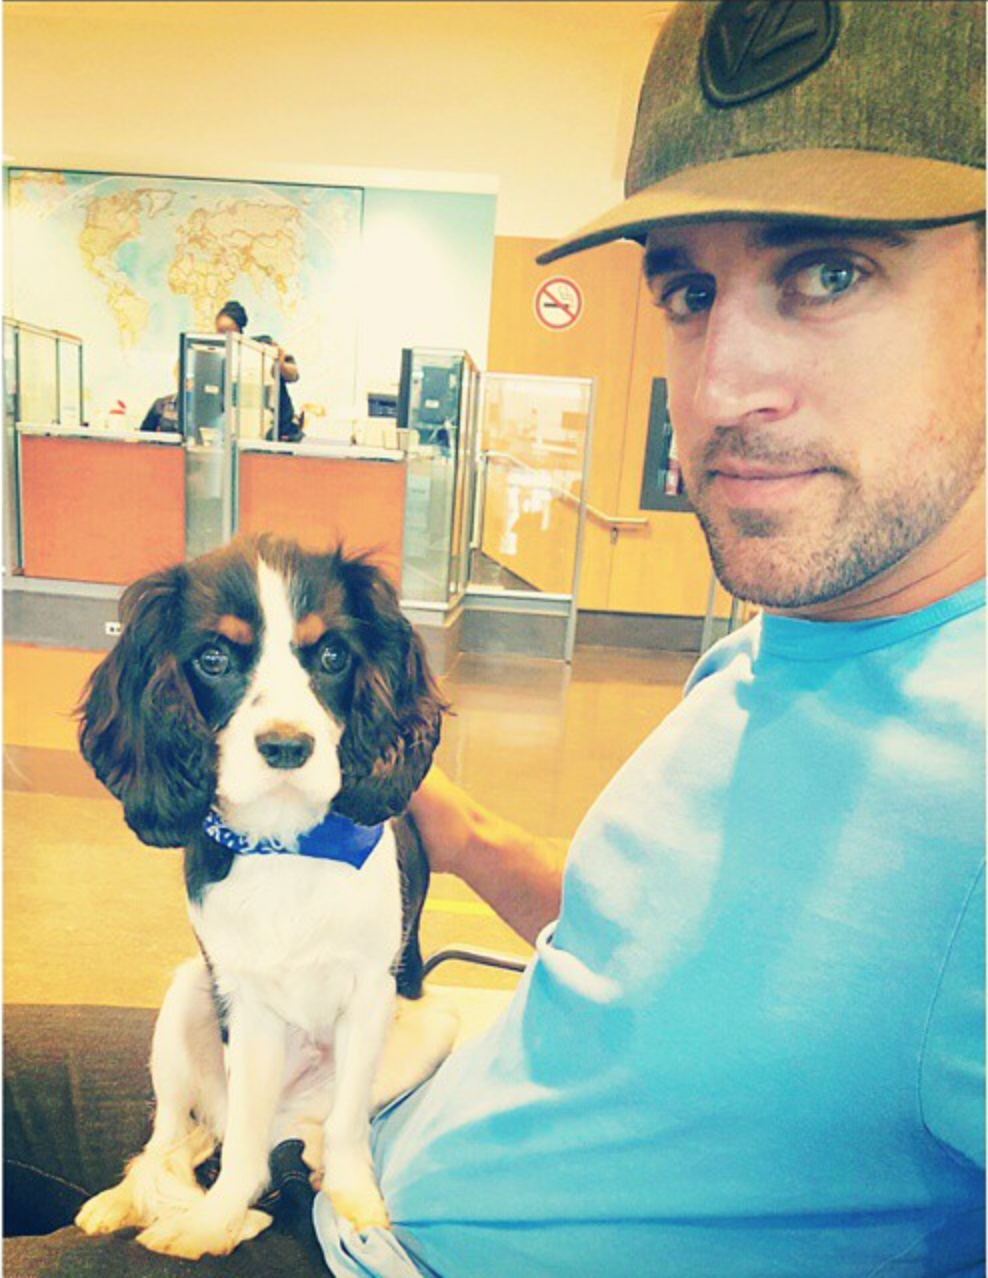 Aaron And His Puppy Chance Http Lambeaufield Tumblr Com Post 122163175608 Aaron Chance Rodgers Aaron Rodgers Green Bay Packers Fans Packers Baby